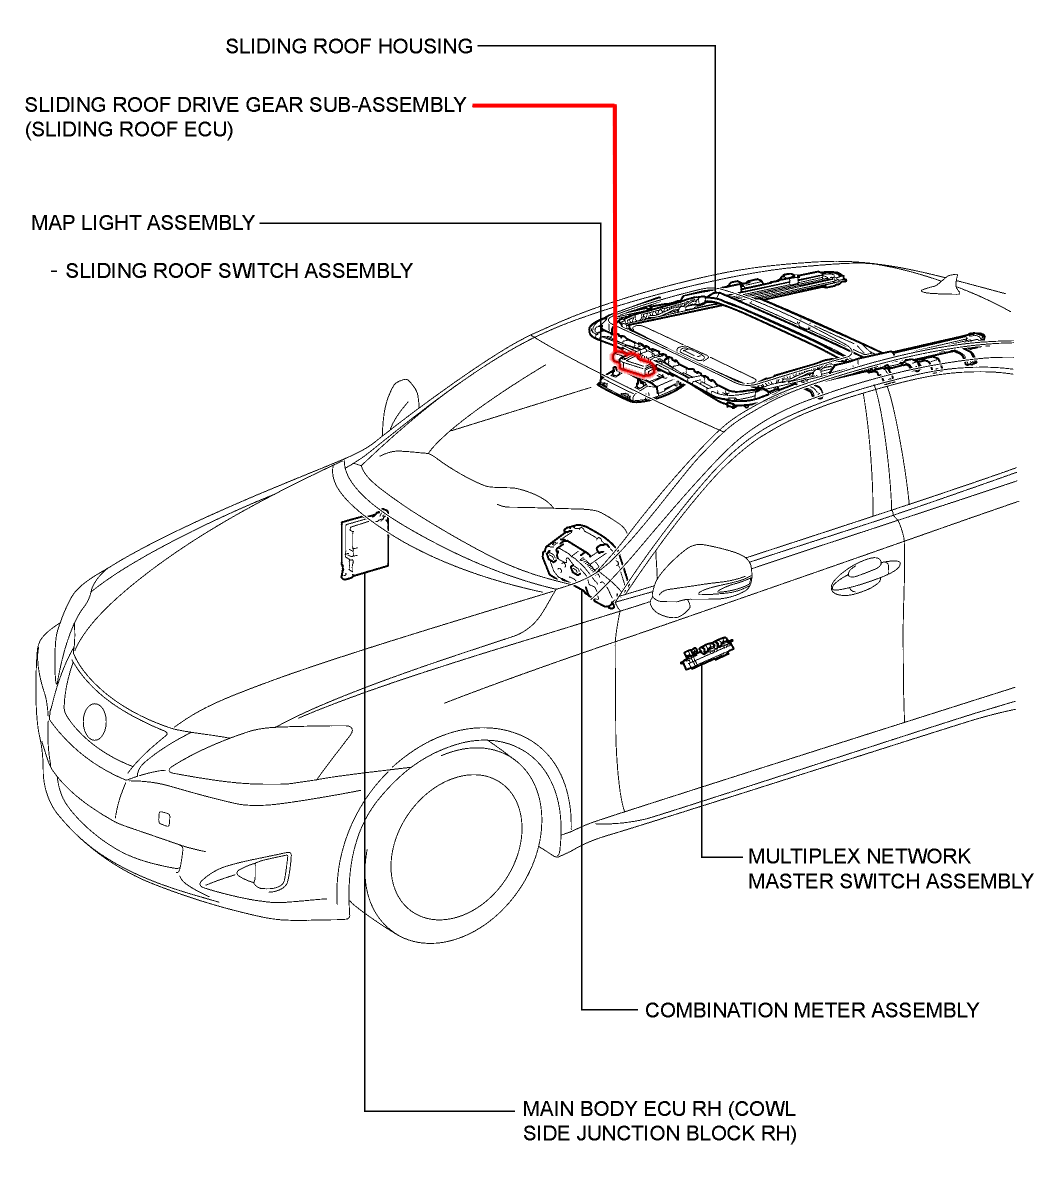 1998 Lexus Gs300 Fuse Box Diagram